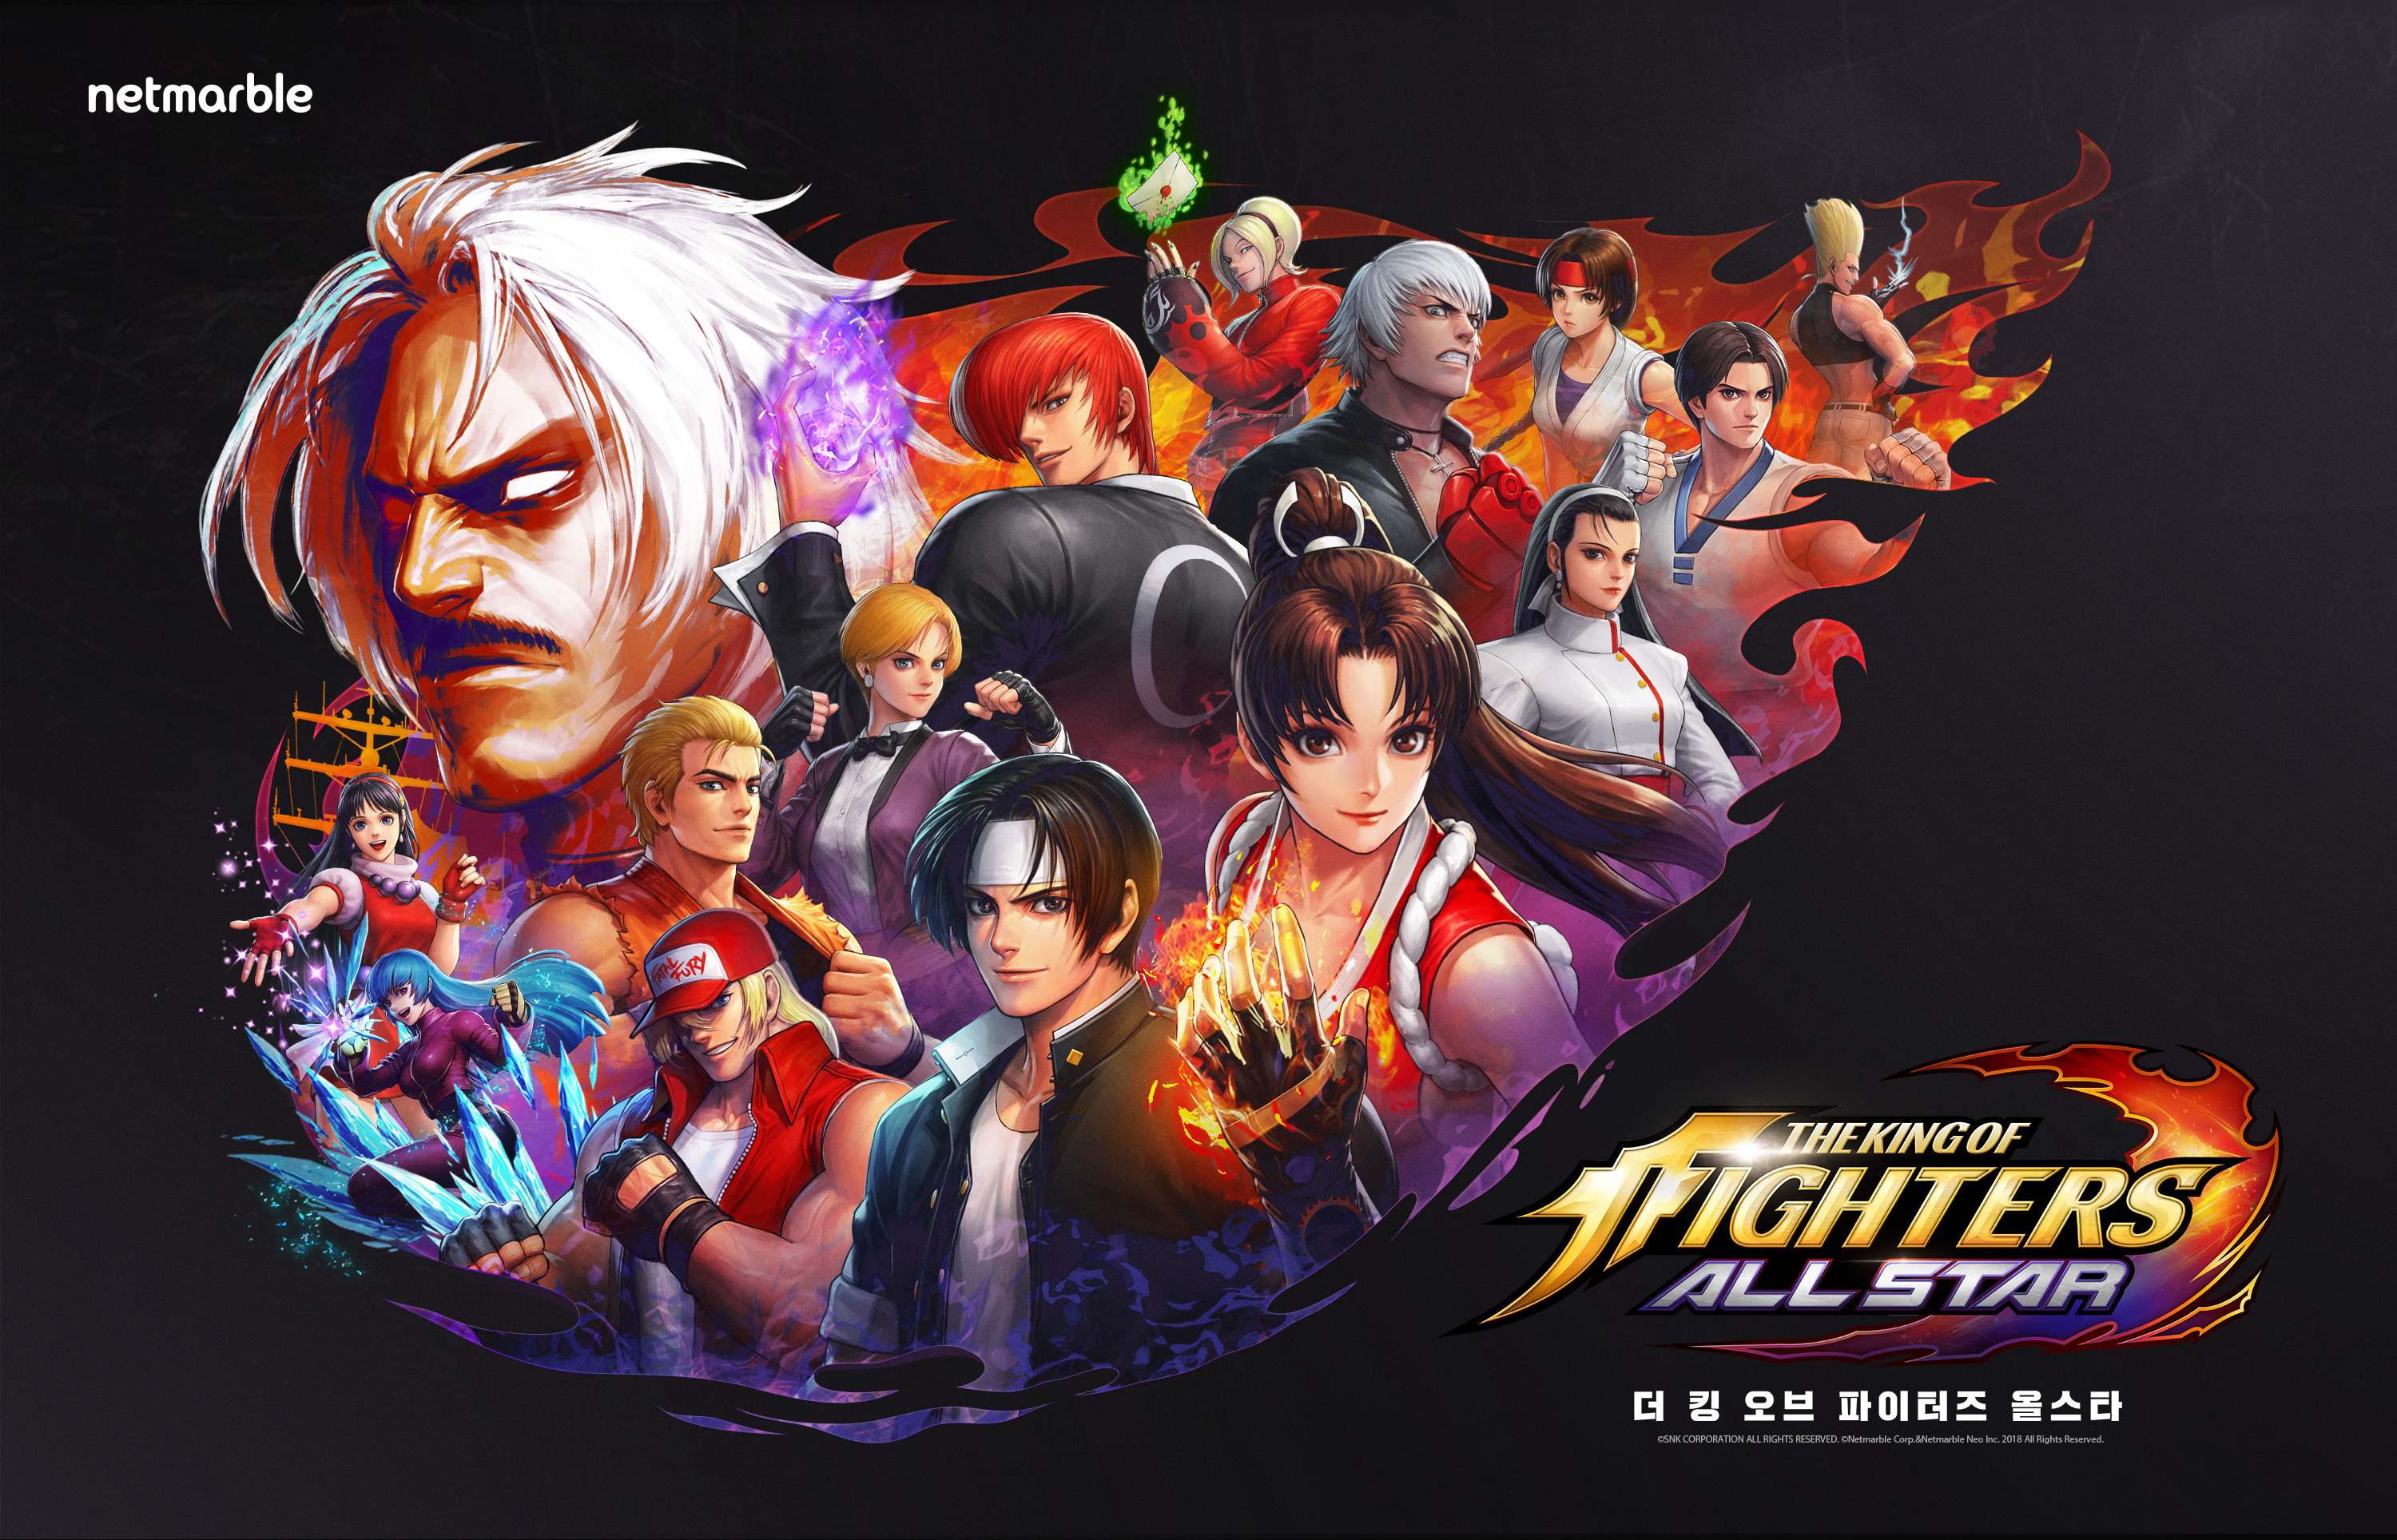 Netmarble will globally launch The King of Fighters Allstar